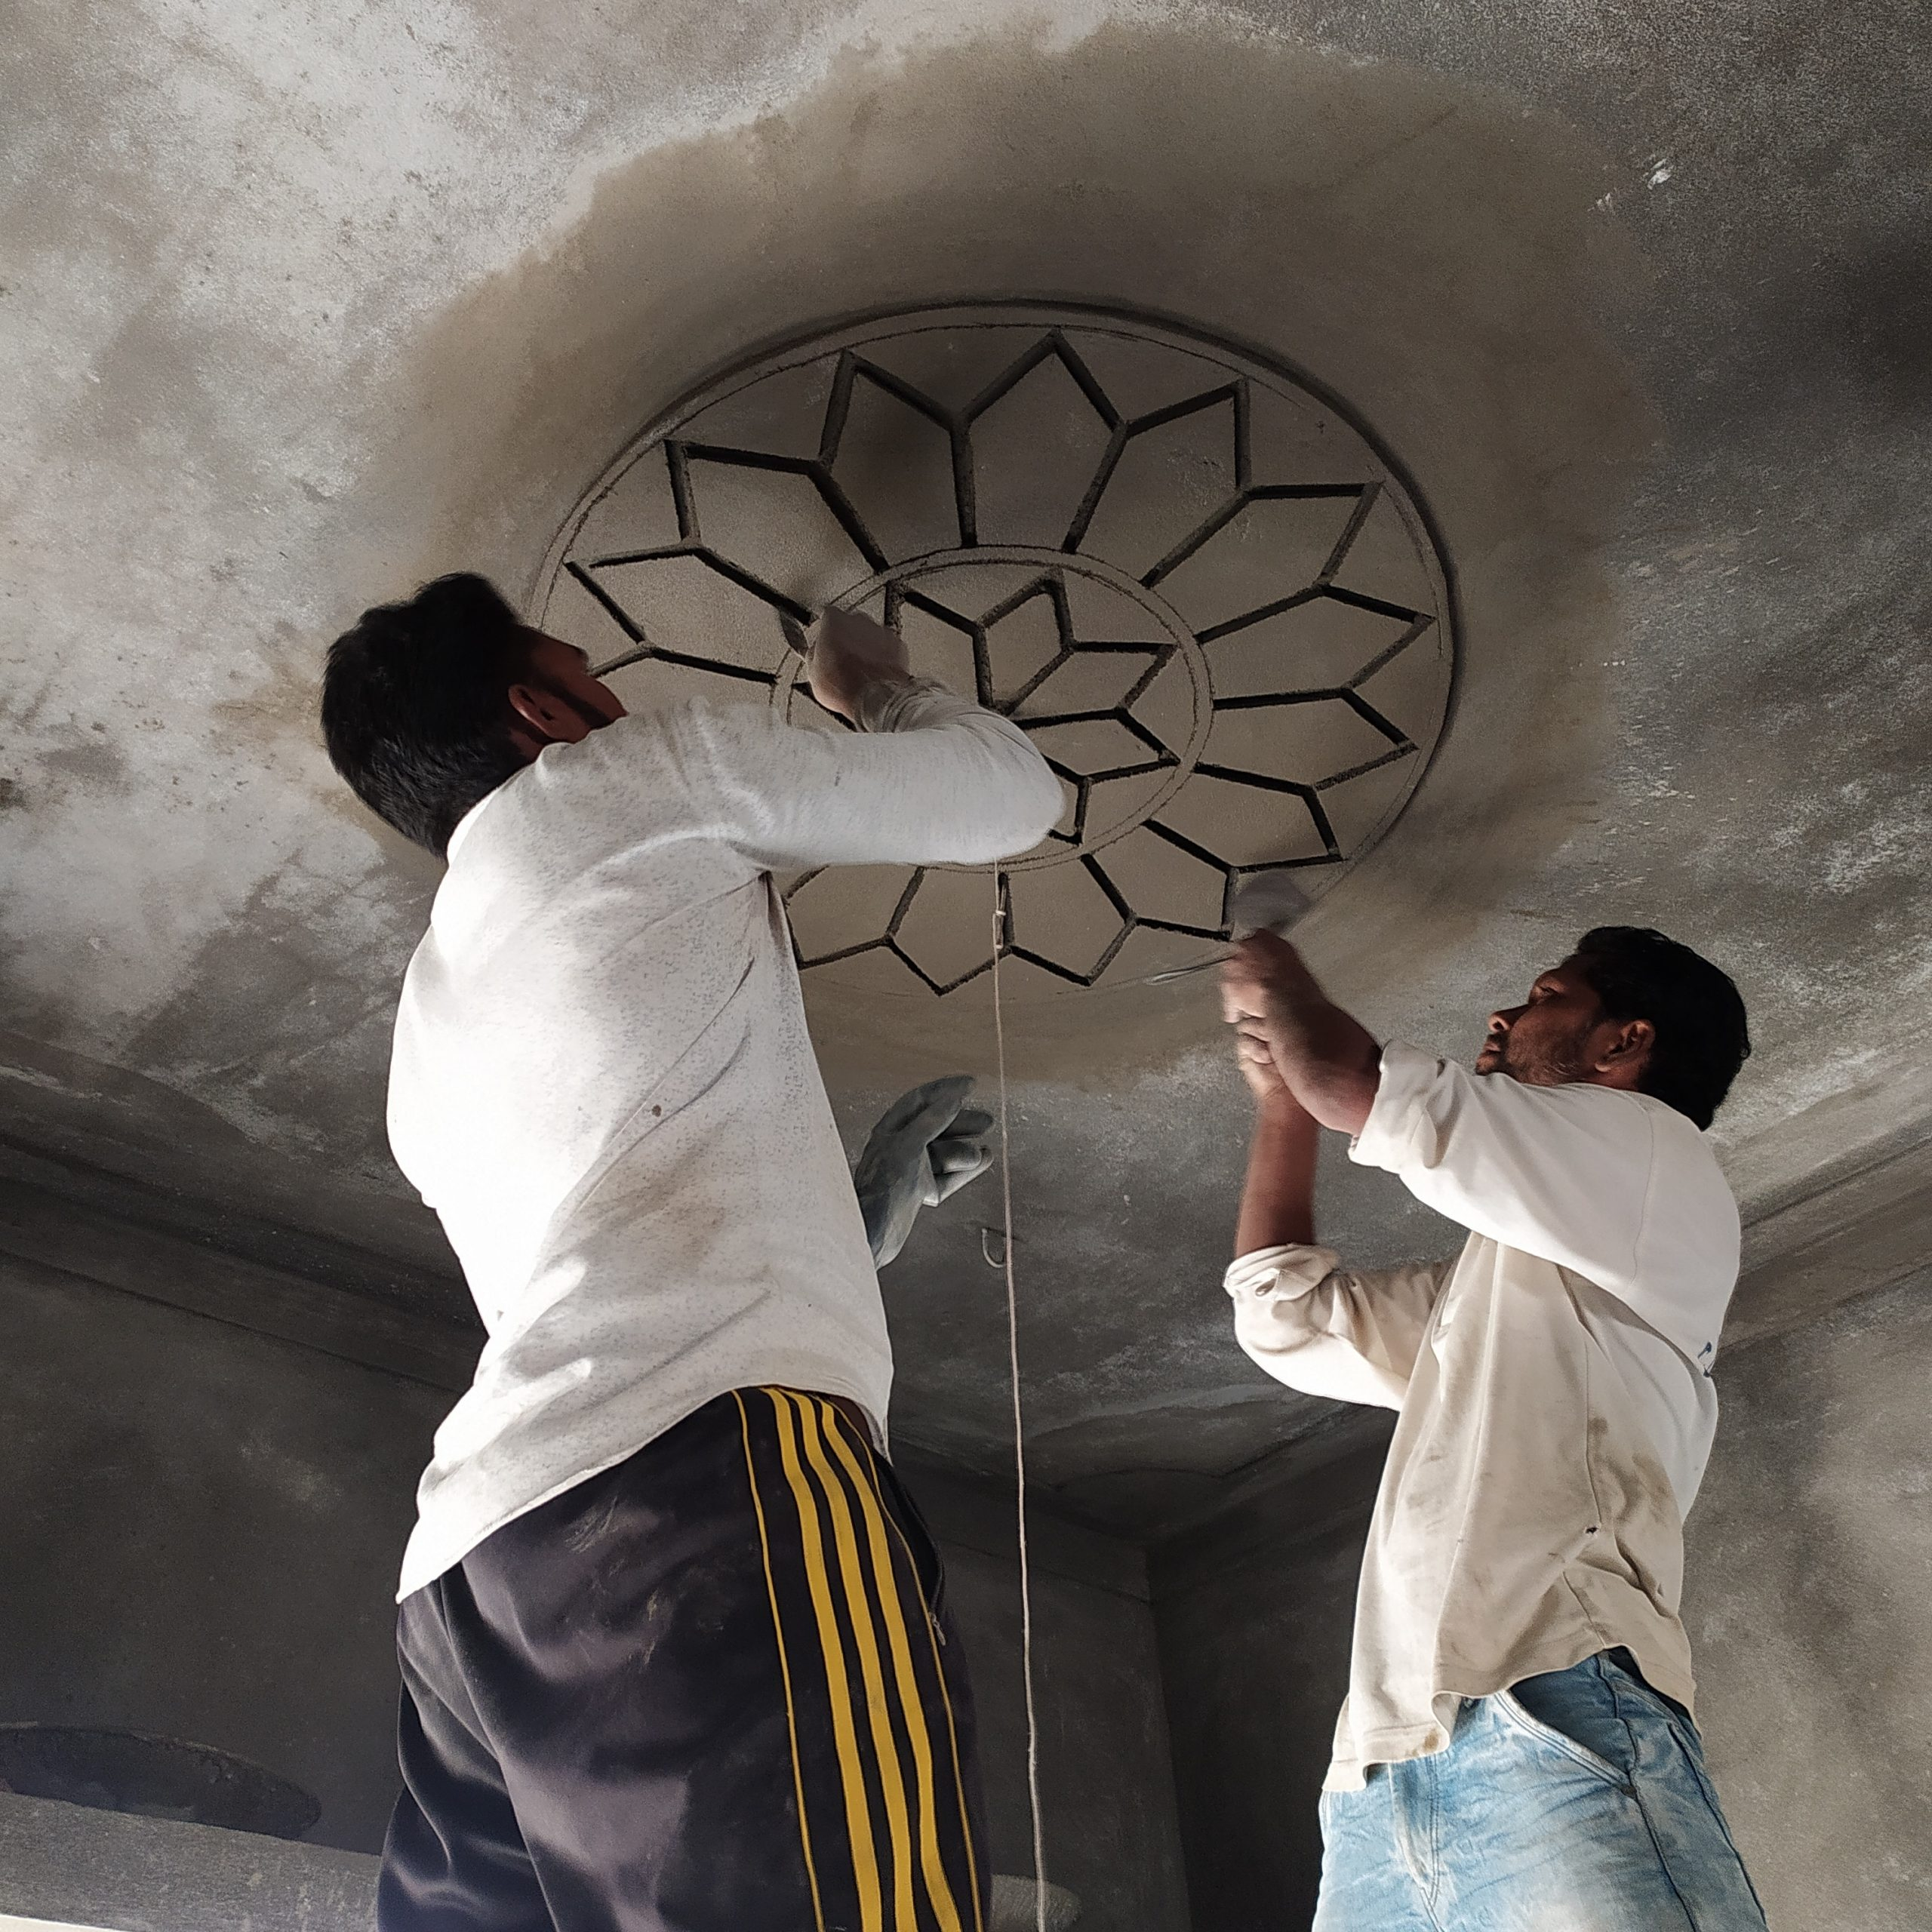 Workers making a floral design on a roof